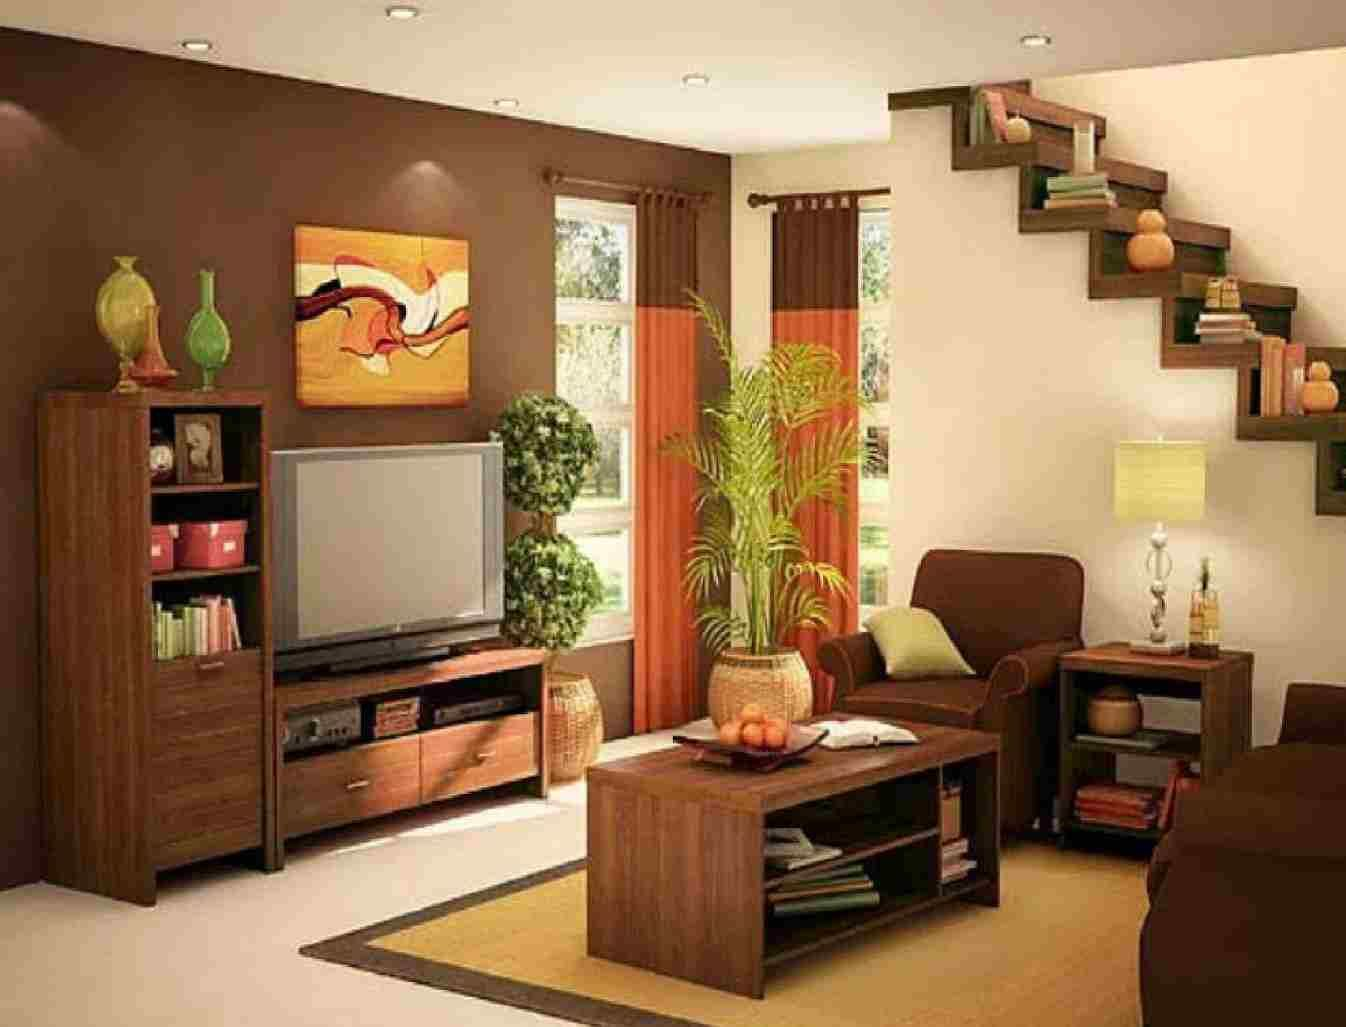 Interior Decoration With Waste Material Interior Decoration With Waste Material Interior Small House